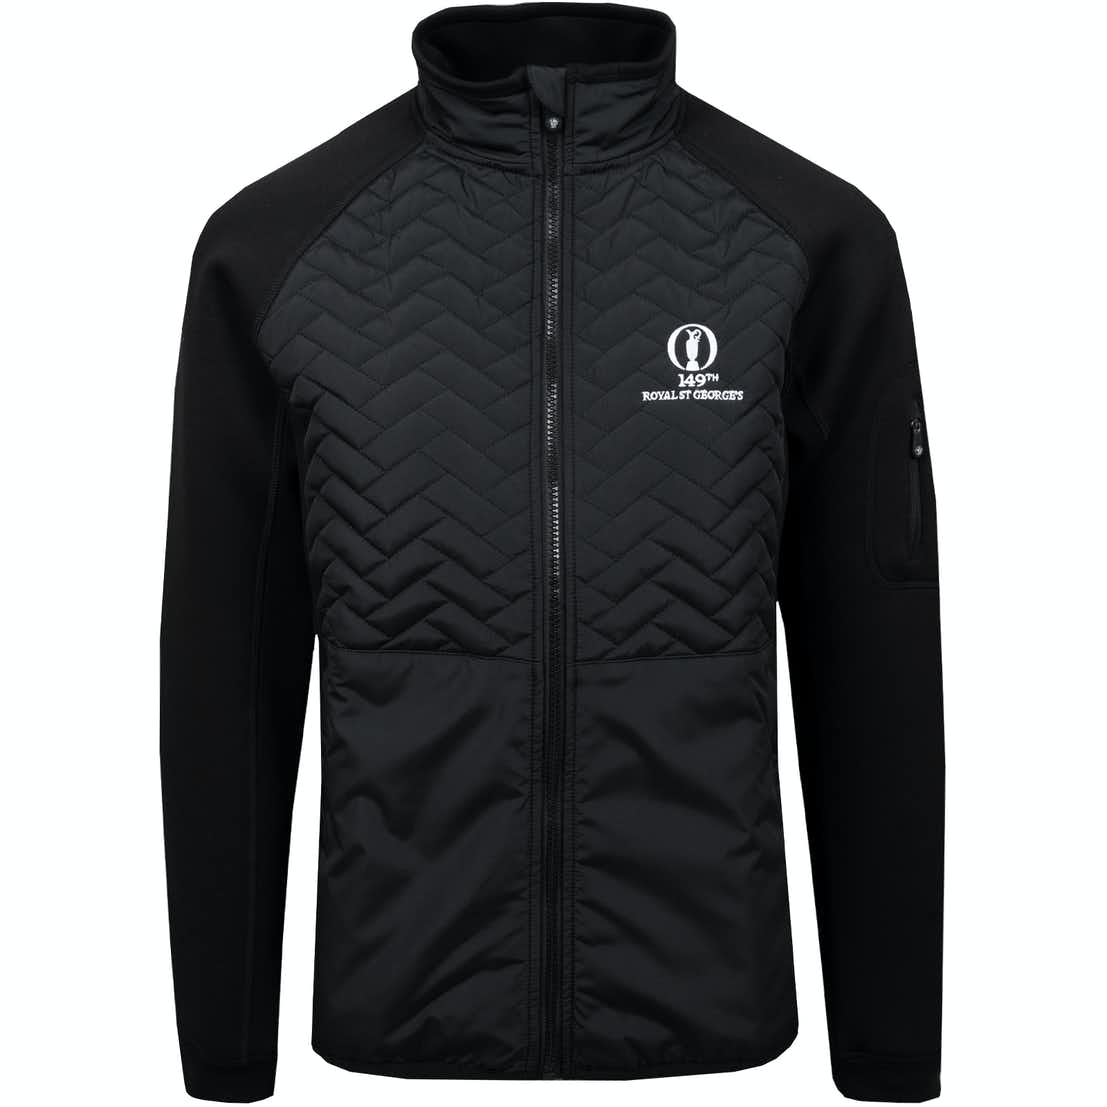 149th Royal St George's Therma Gust Quilted Jacket - Black